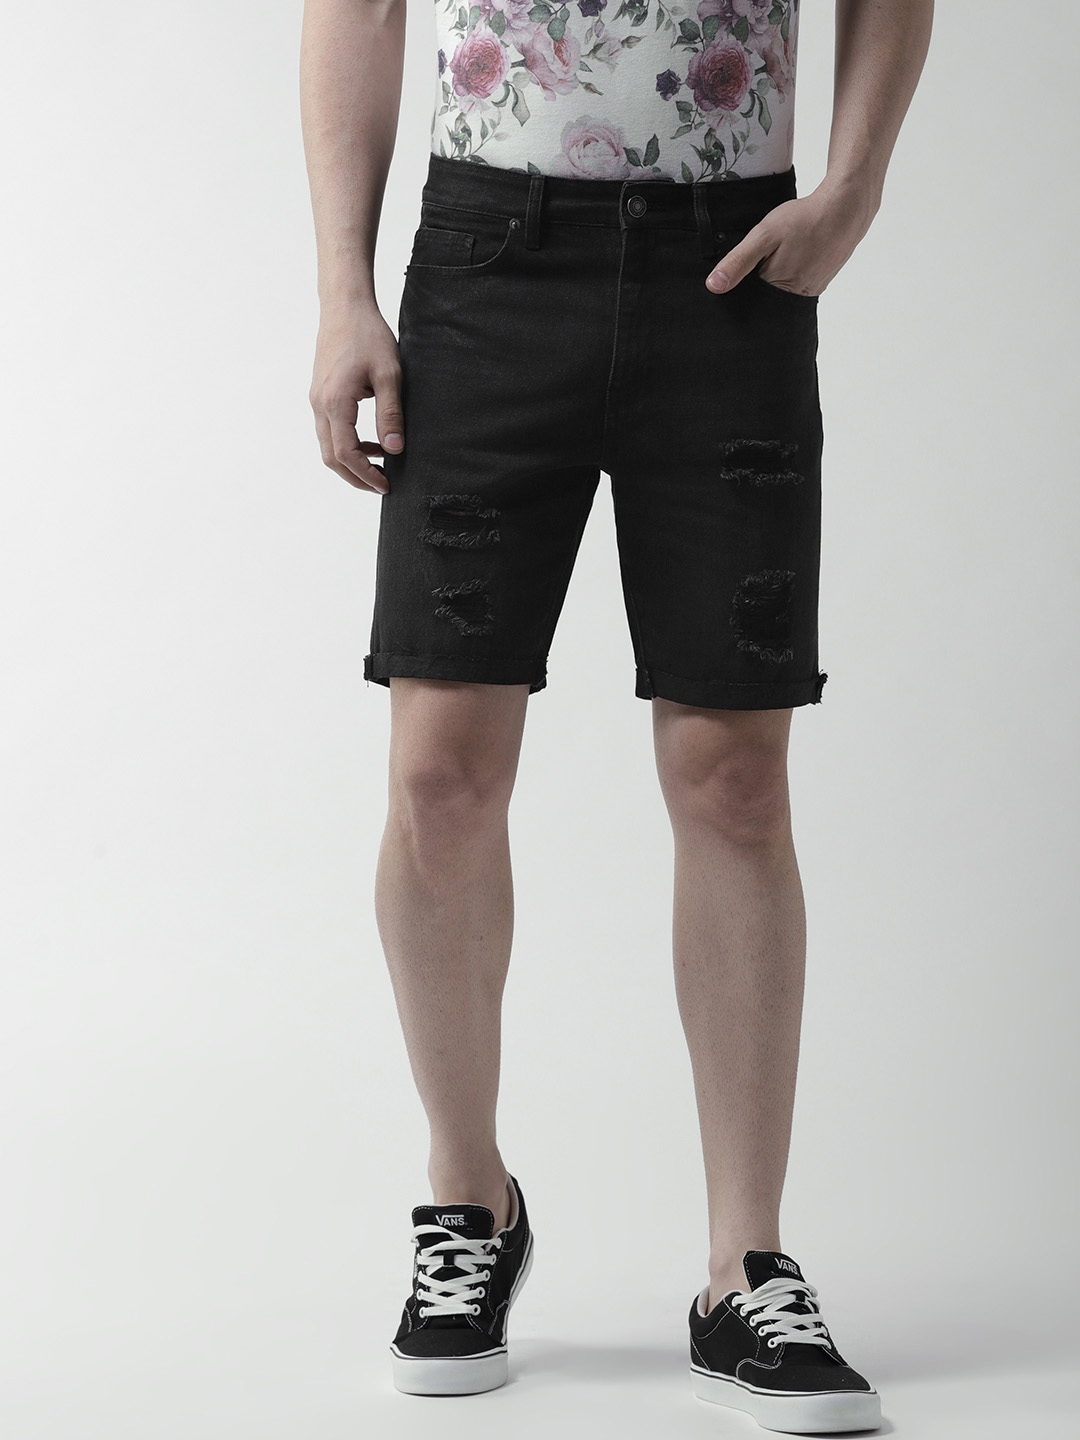 aebc861c84 Buy FOREVER 21 Men Black Solid Distressed Regular Fit Denim Shorts ...